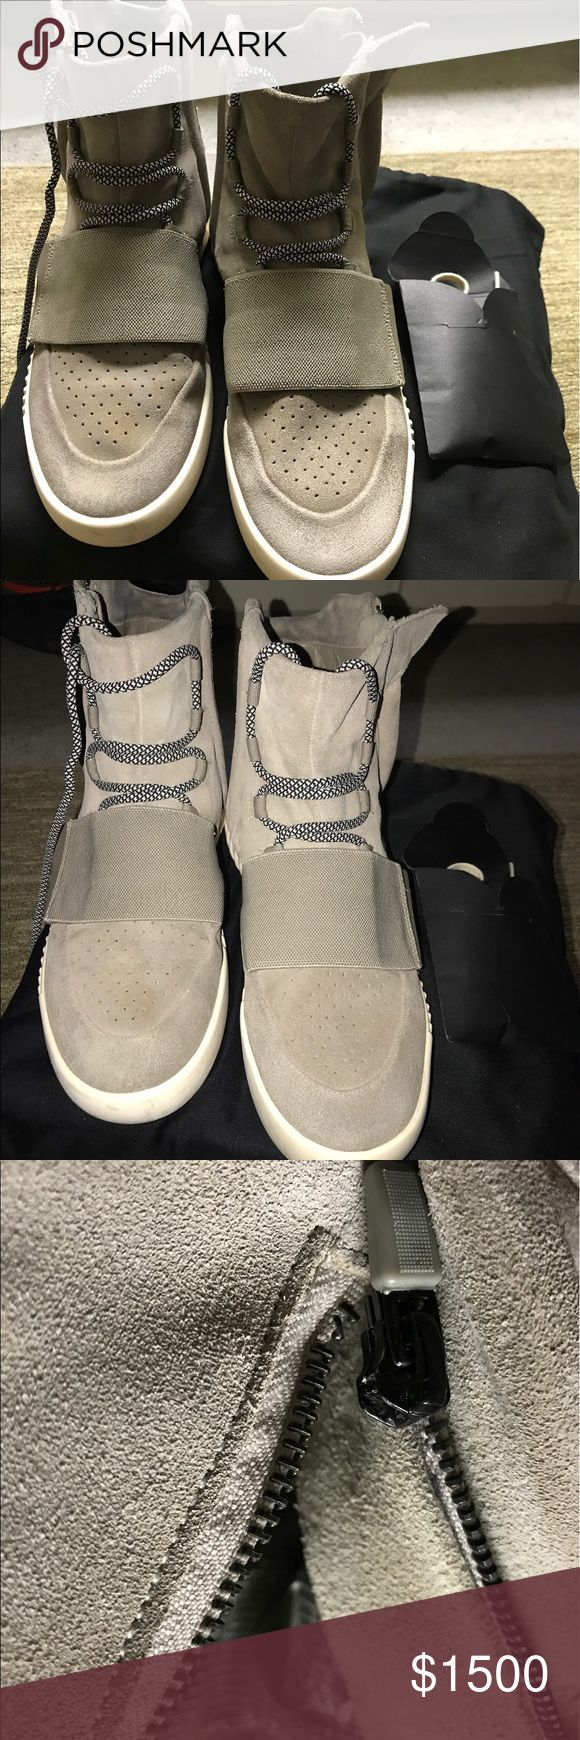 Adidas yeezy Boost 750 og gray size 11 Good condition Adidas Shoes Boots